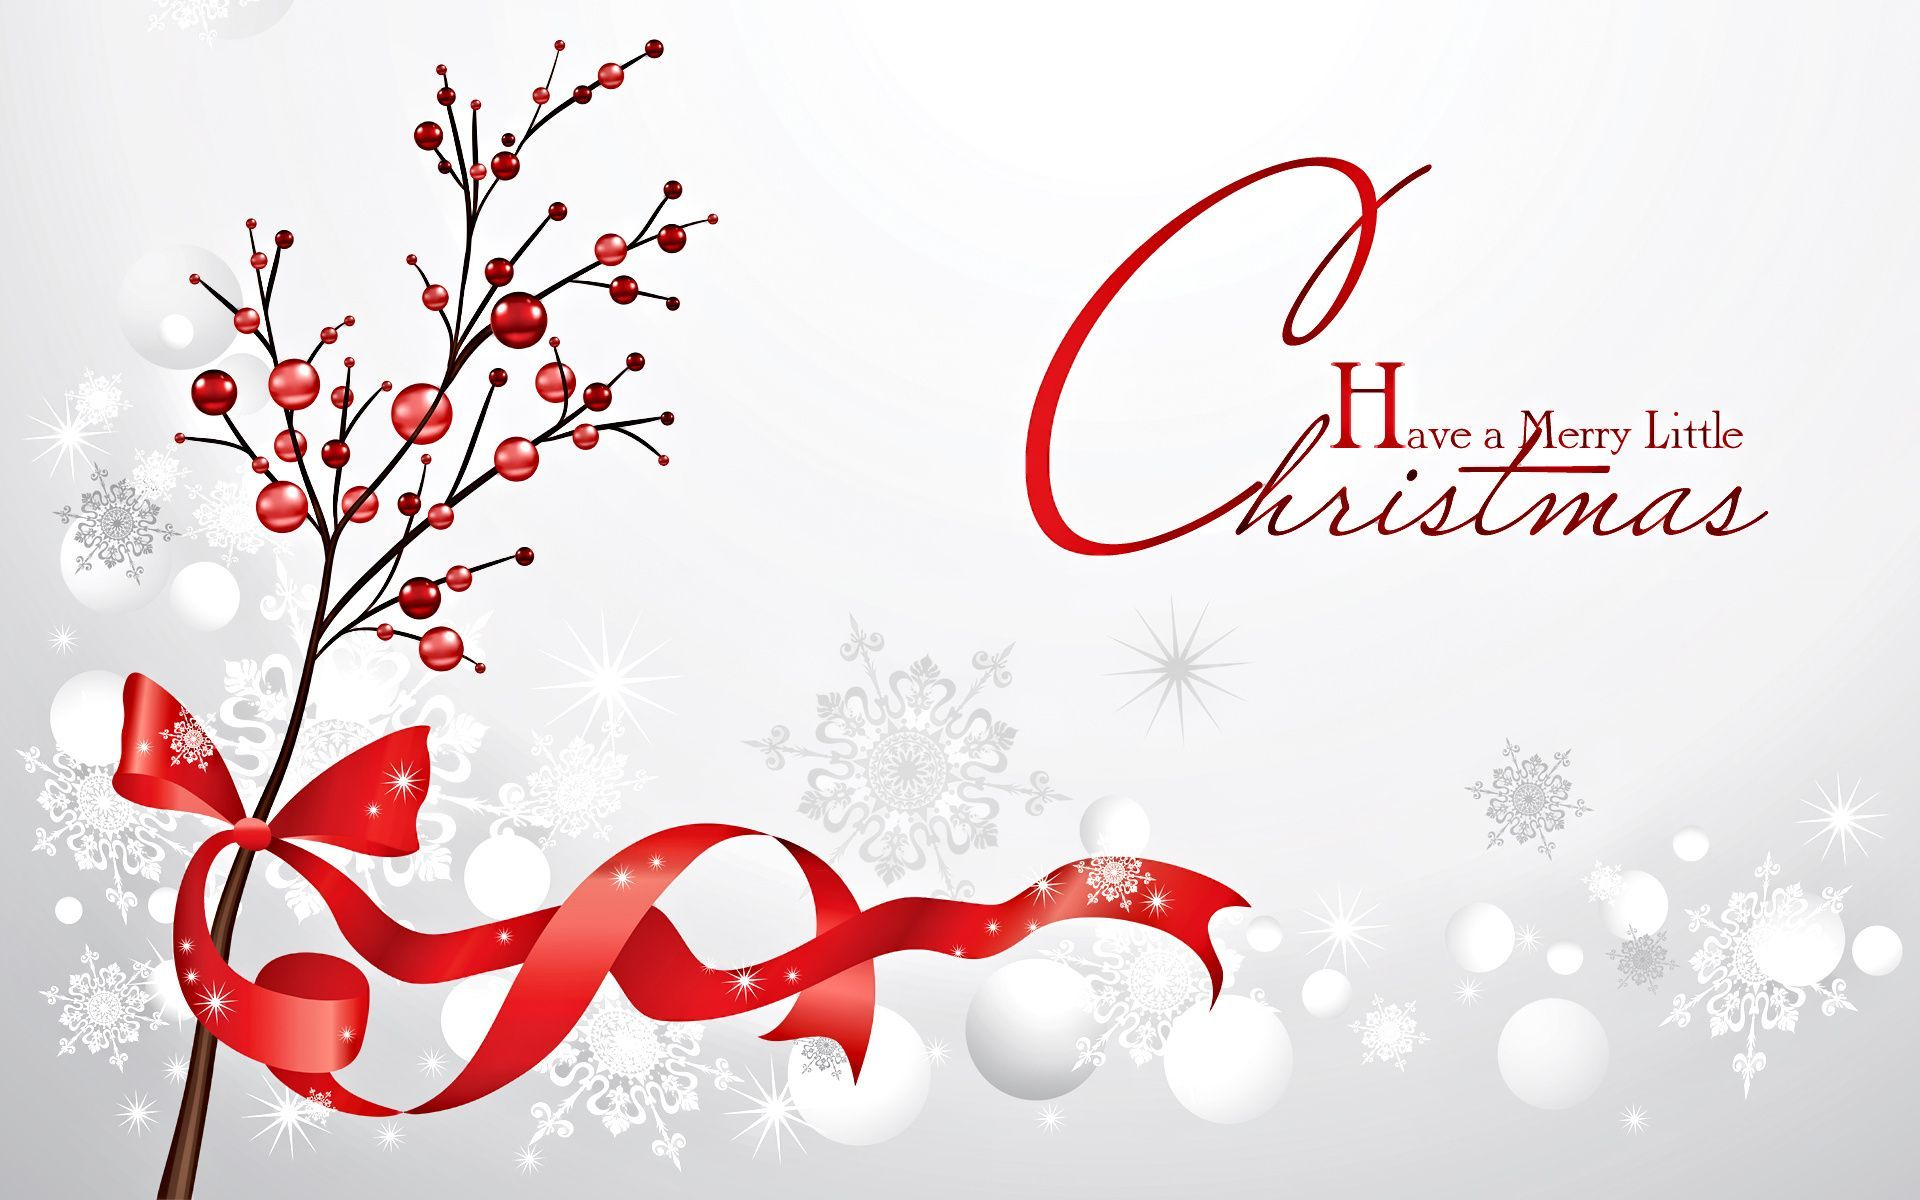 Merry-Christmas-Wallpaper-12